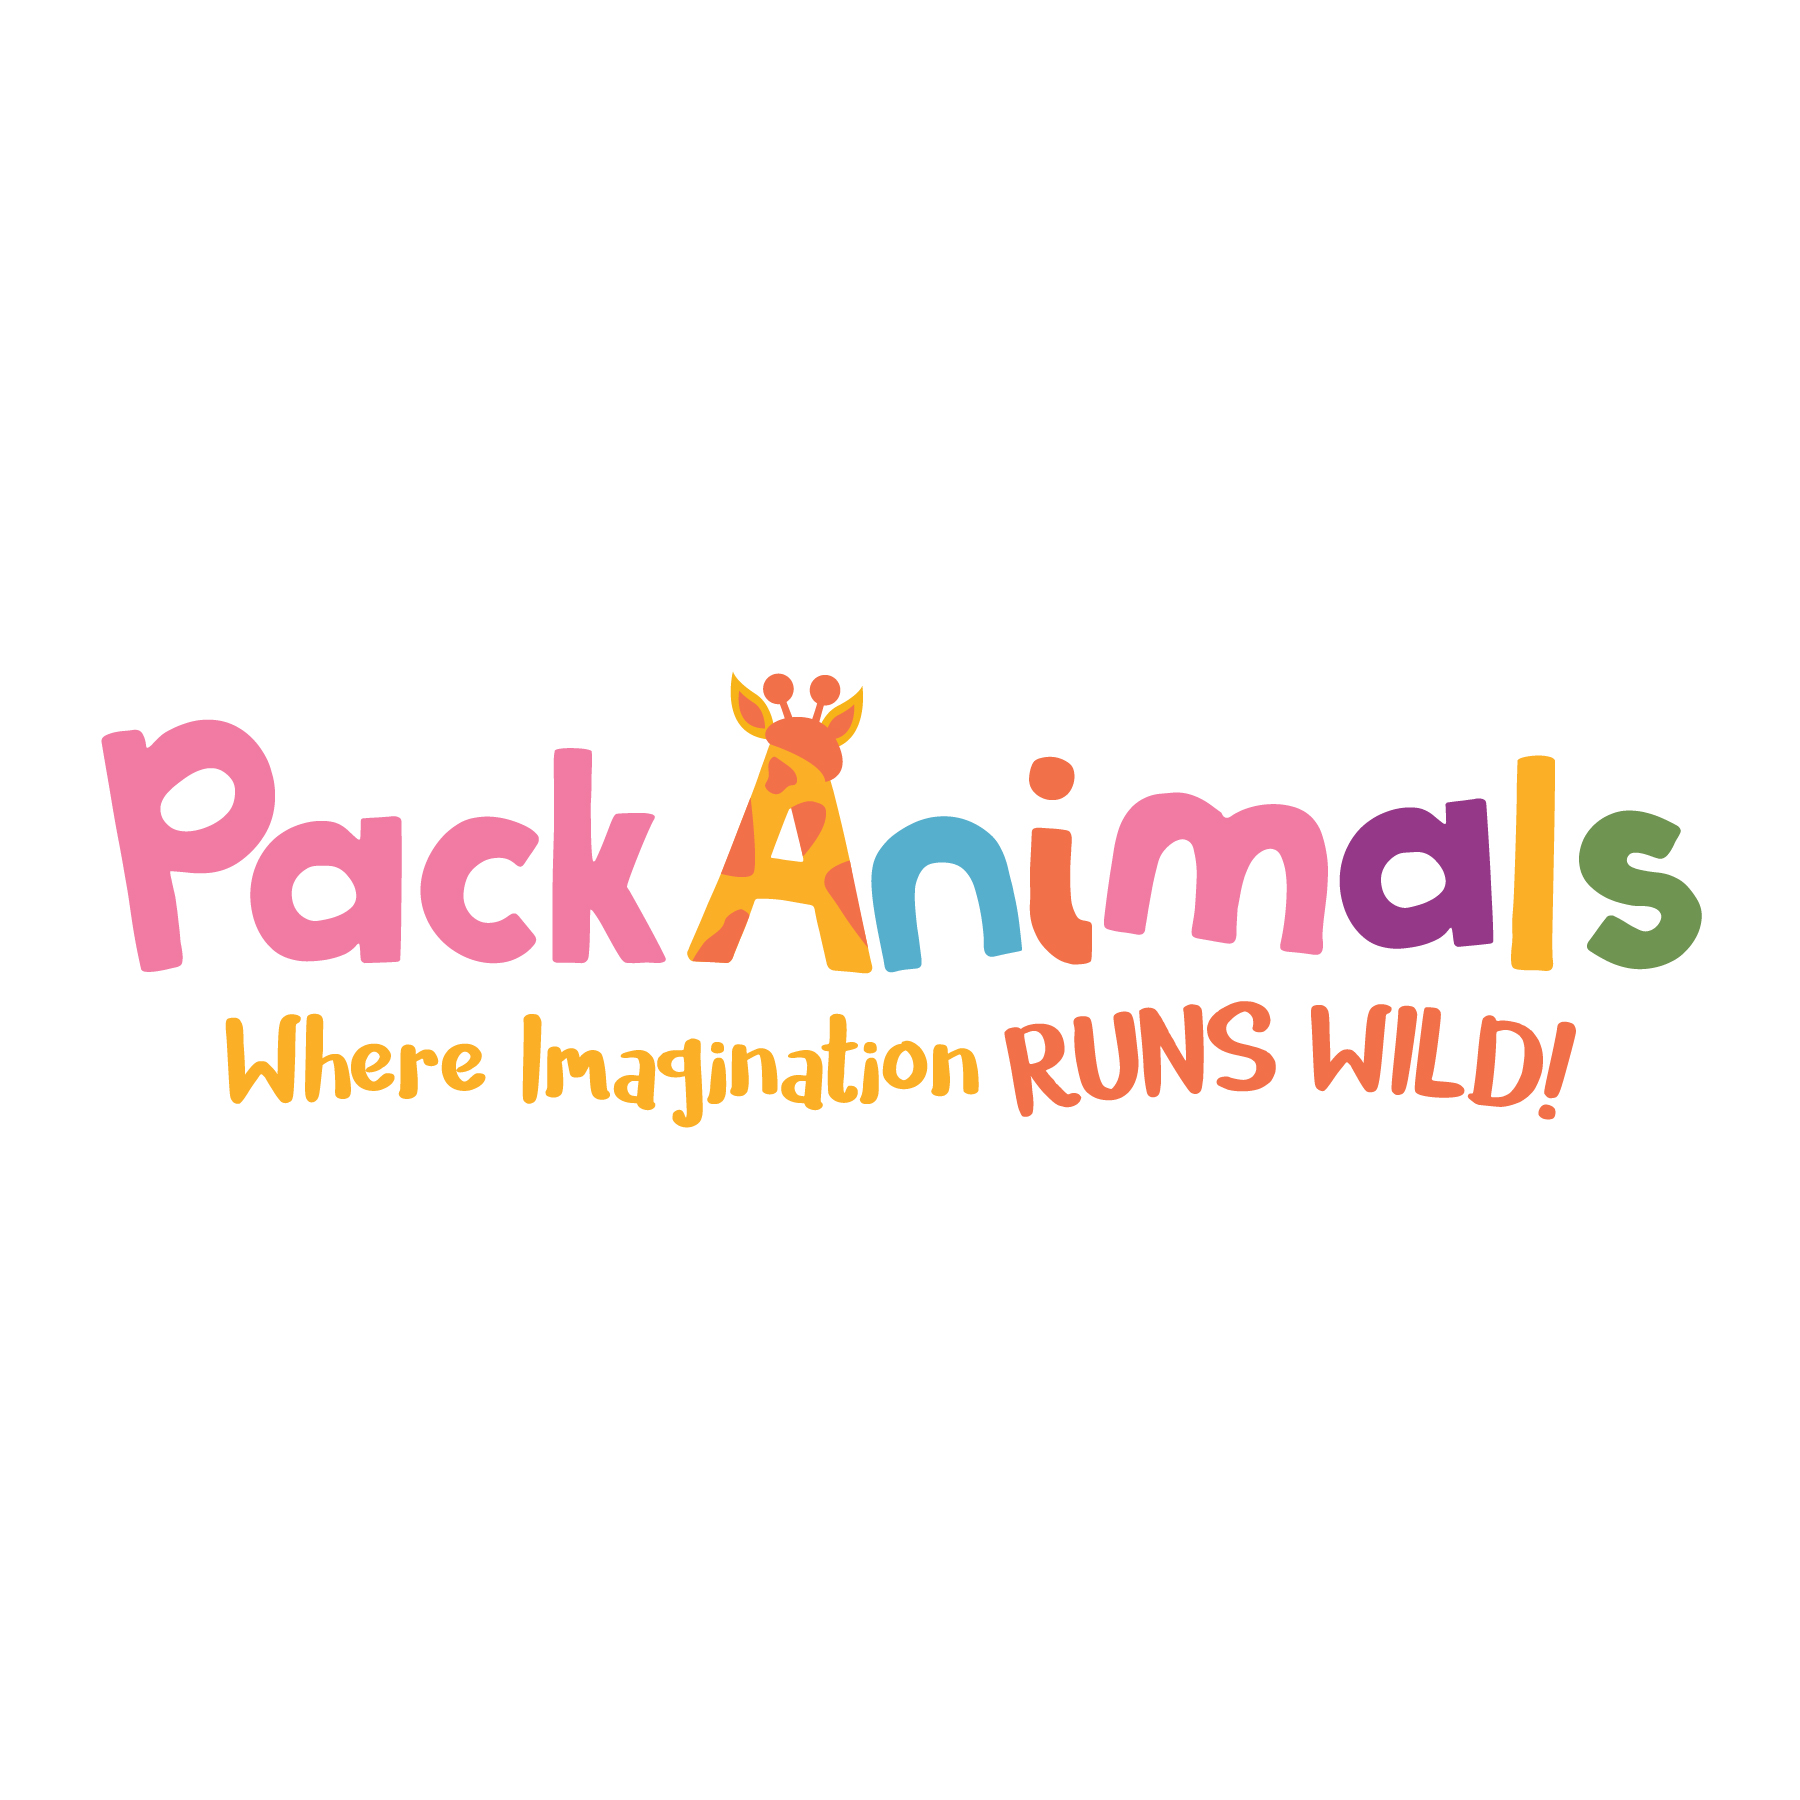 packanimals web-01.jpg